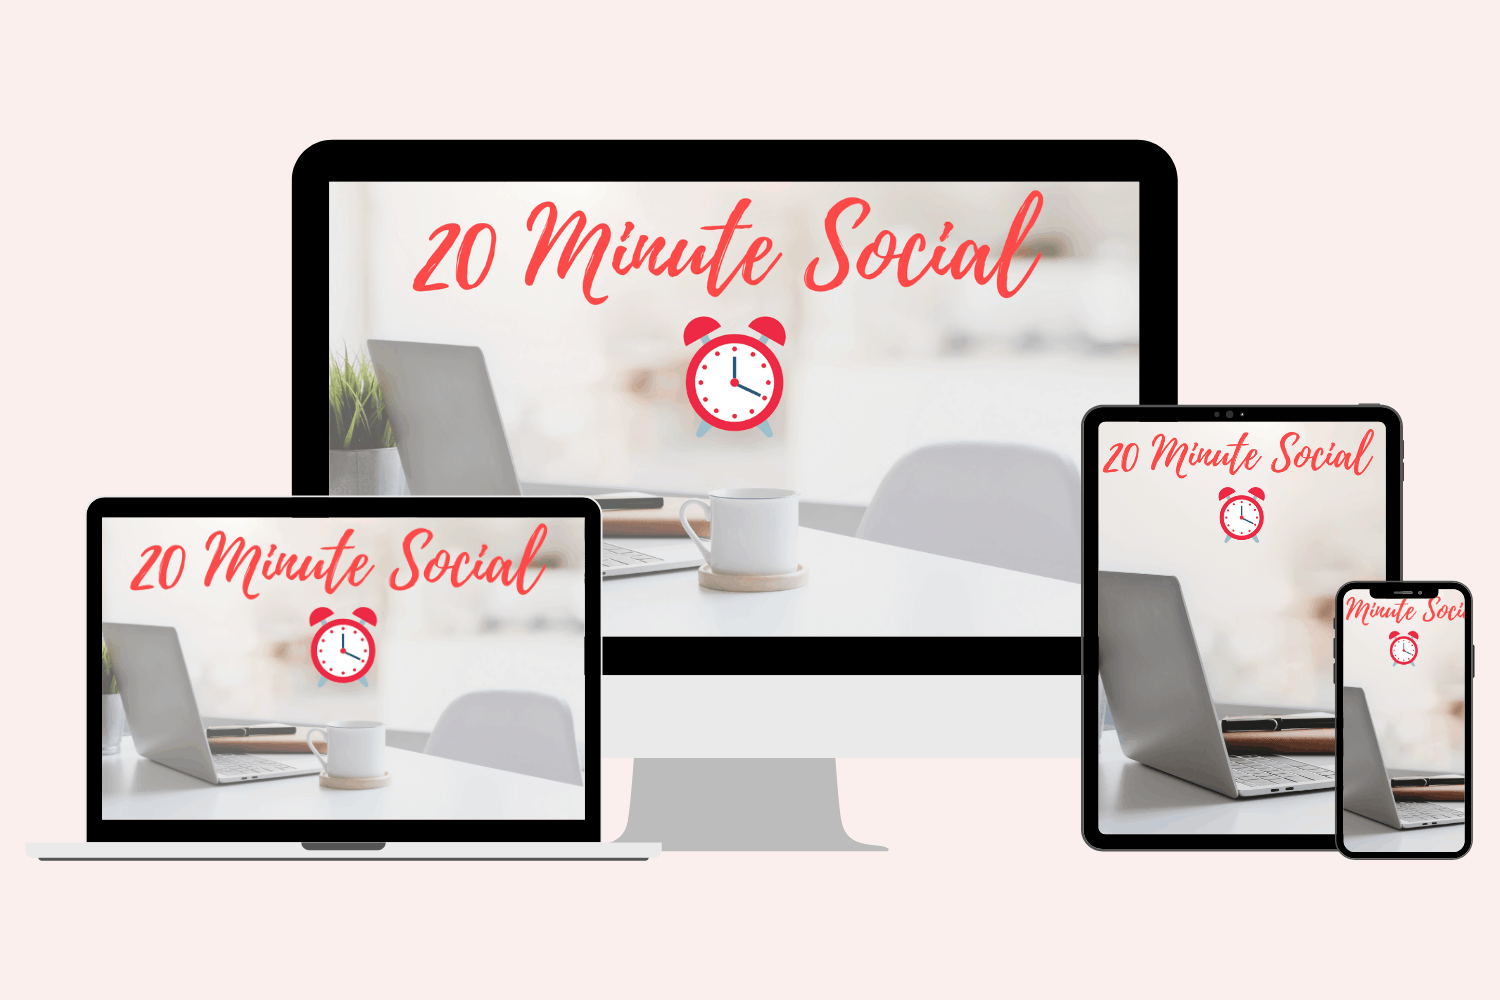 20 Minute Social Promos - Mockups - updated